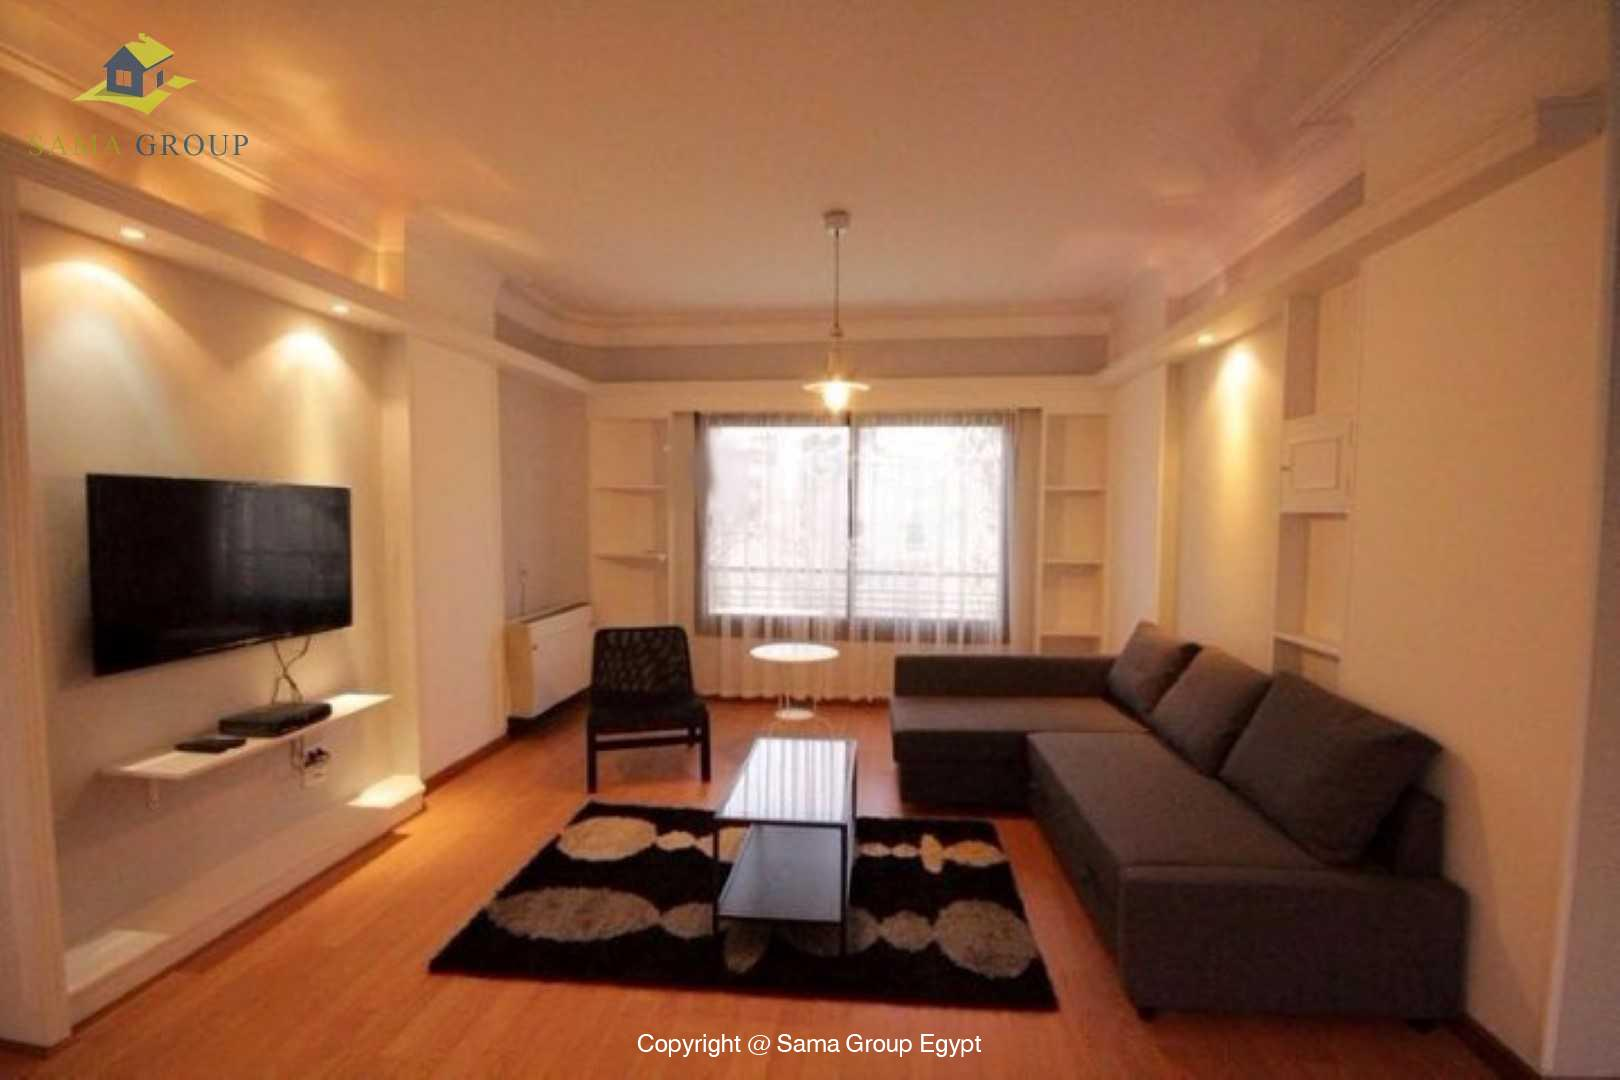 Brand New Modern Apartment For Rent In Maadi